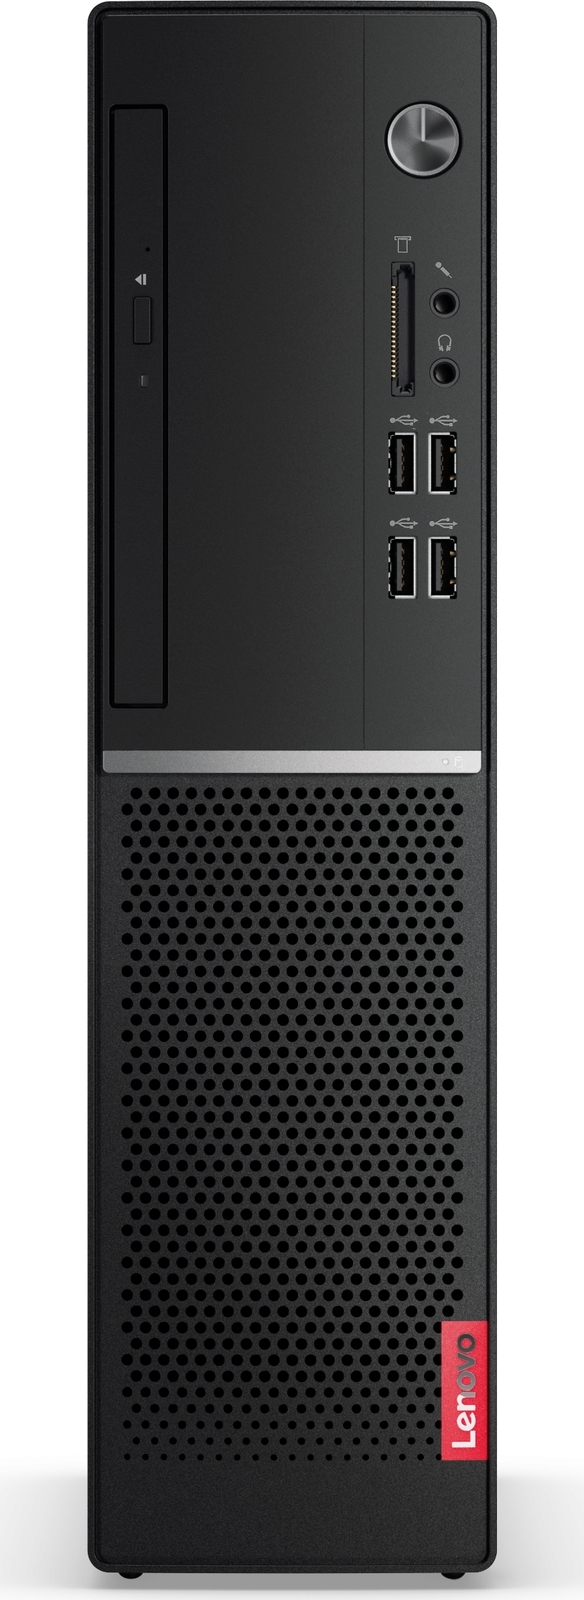 Системный блок Lenovo V520s-08IKL SFF, 10NNS14W00, черный пк lenovo thinkcentre m710q tiny slim i3 7100t 4gb 500gb 7 2k hdg630 w10pro64 kb m черный